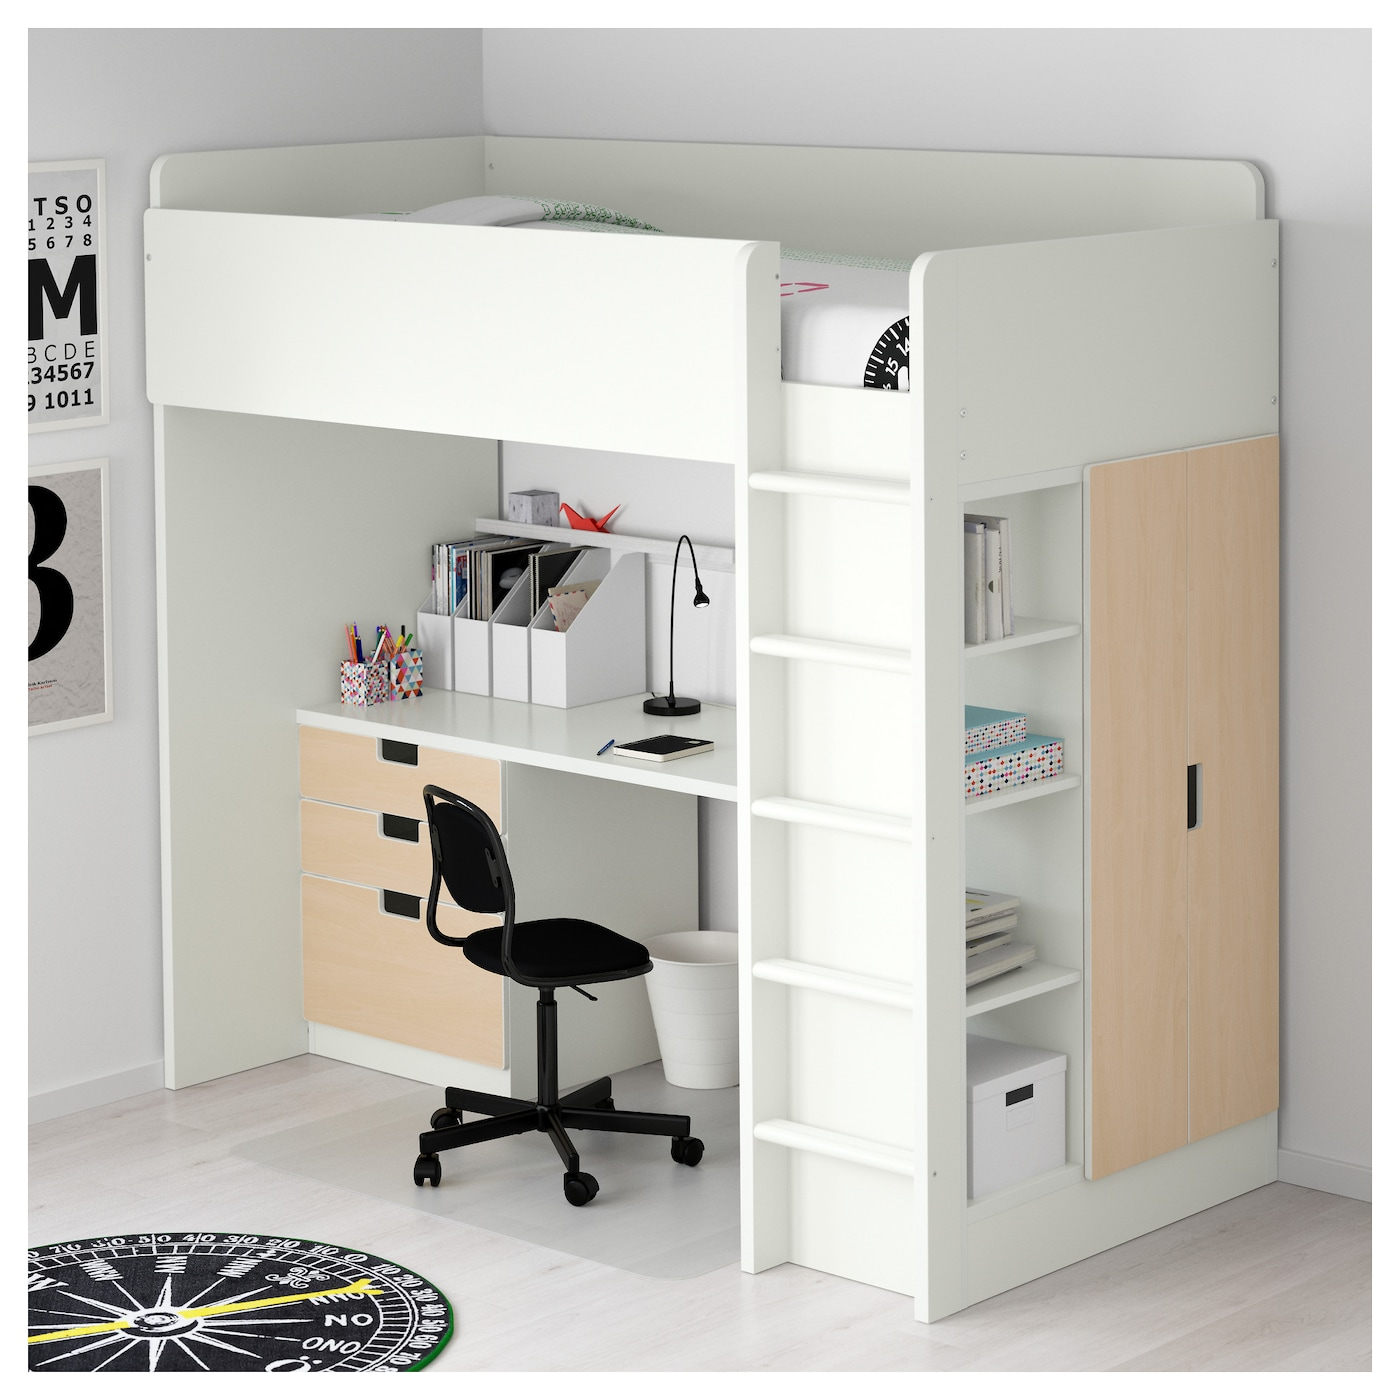 stuva combi lit mezz 3 tir 2 ptes blanc bouleau 207x99x193 cm ikea. Black Bedroom Furniture Sets. Home Design Ideas